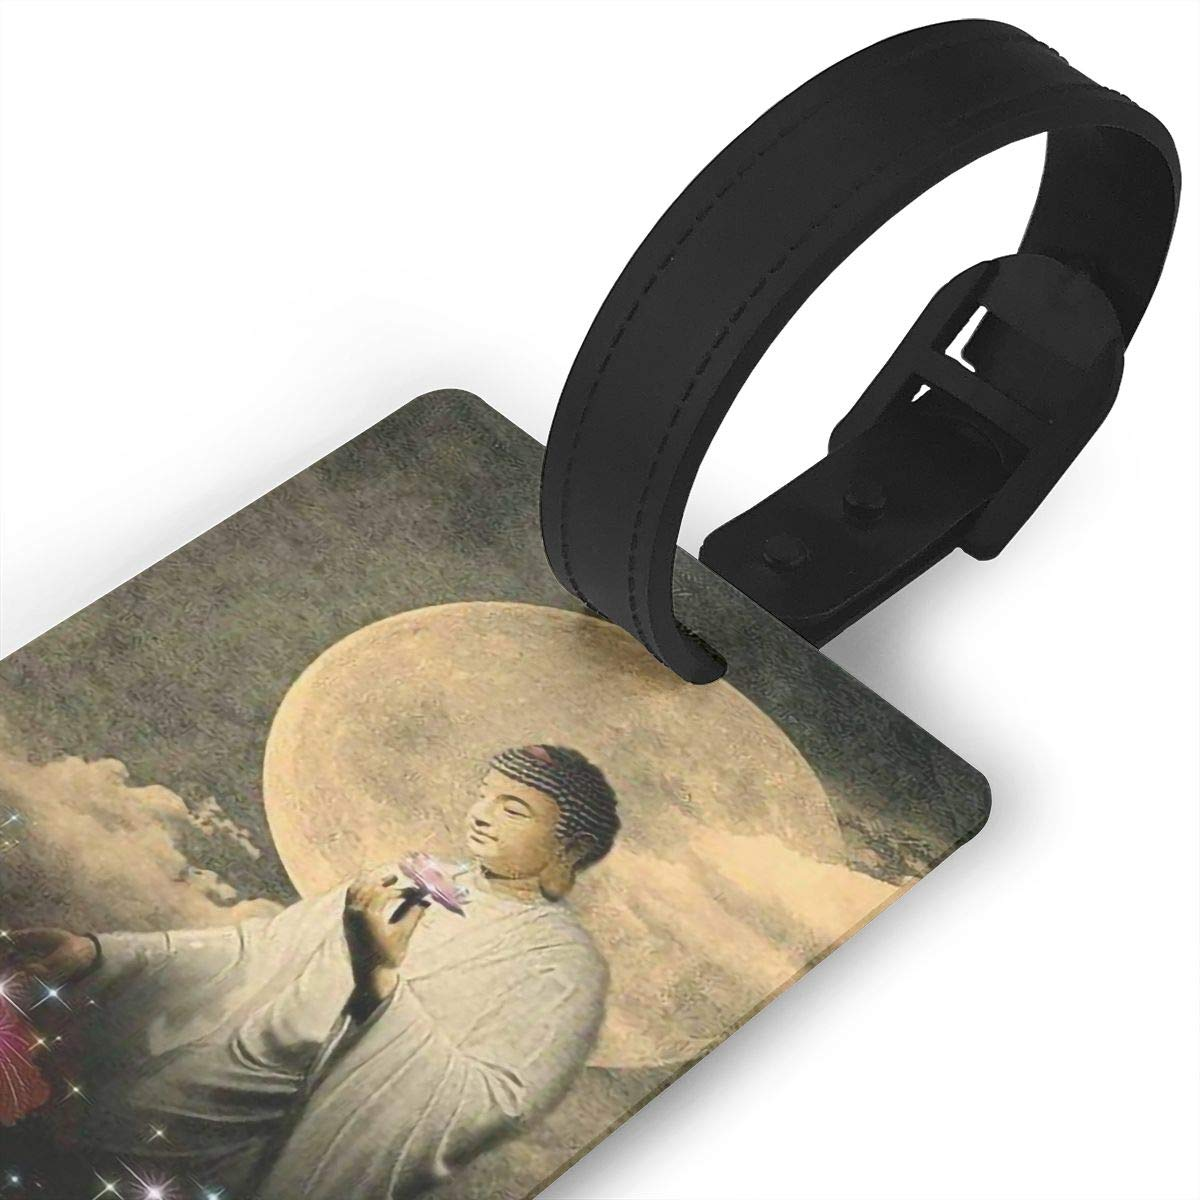 Buddhism Handbag Tag For Suitcase Bag Accessories 2 Pack Luggage Tags